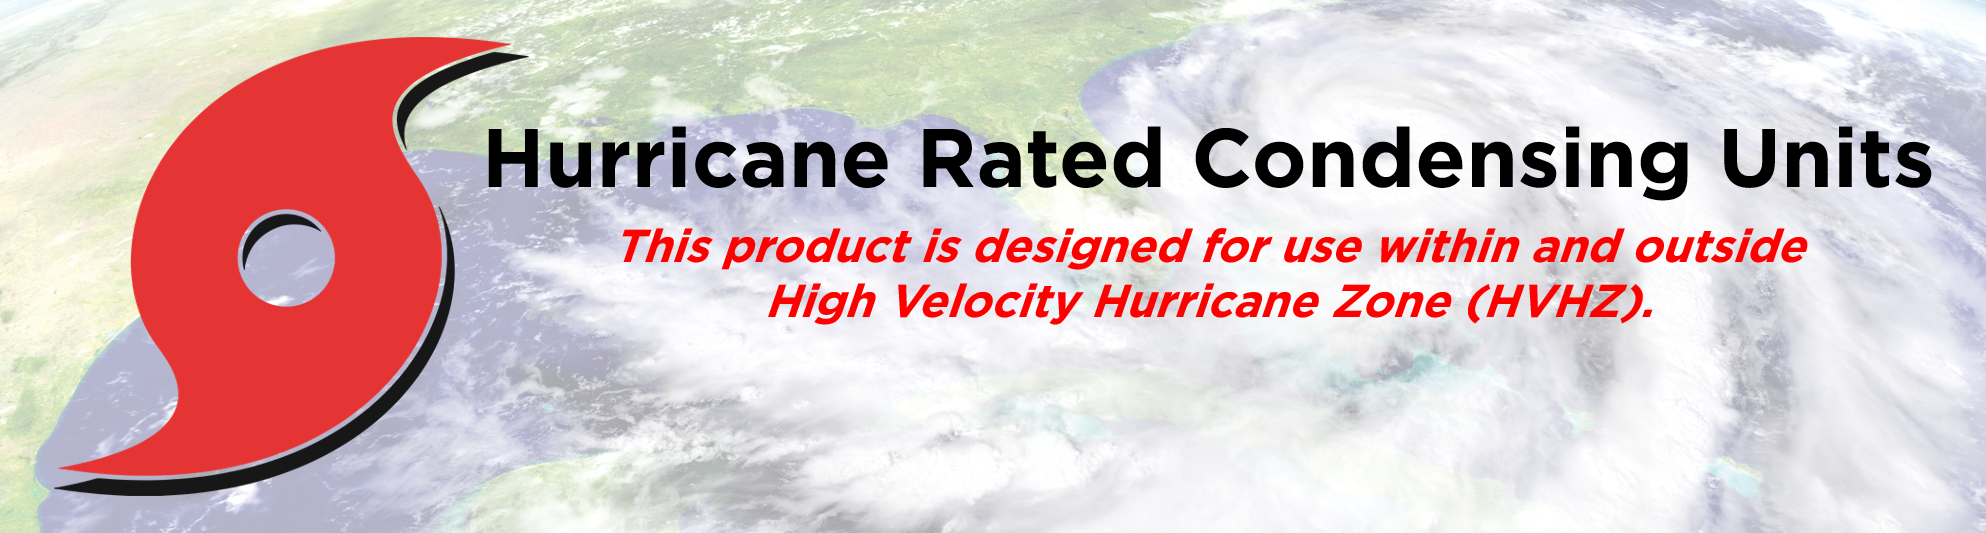 Link to hurricane rated condensing units